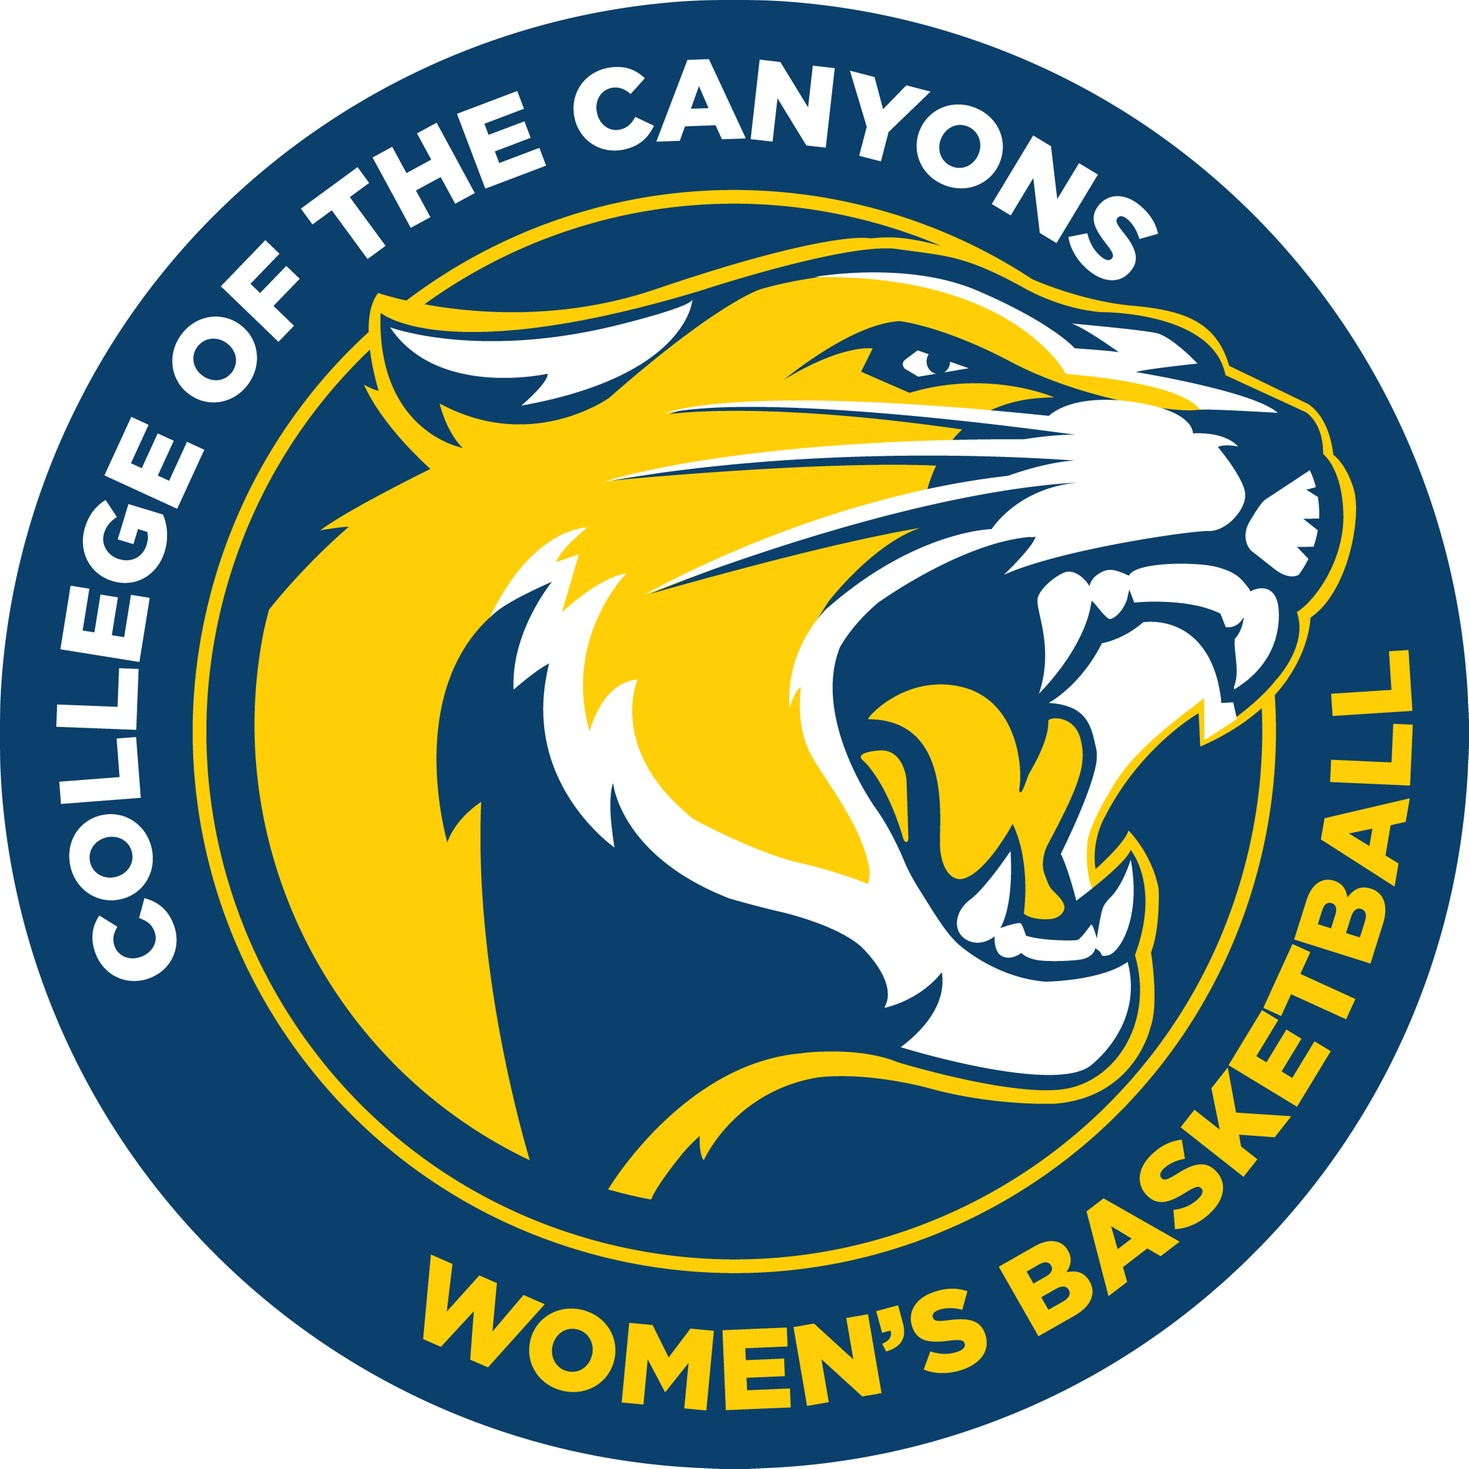 College of the Canyons women's basketball logo.